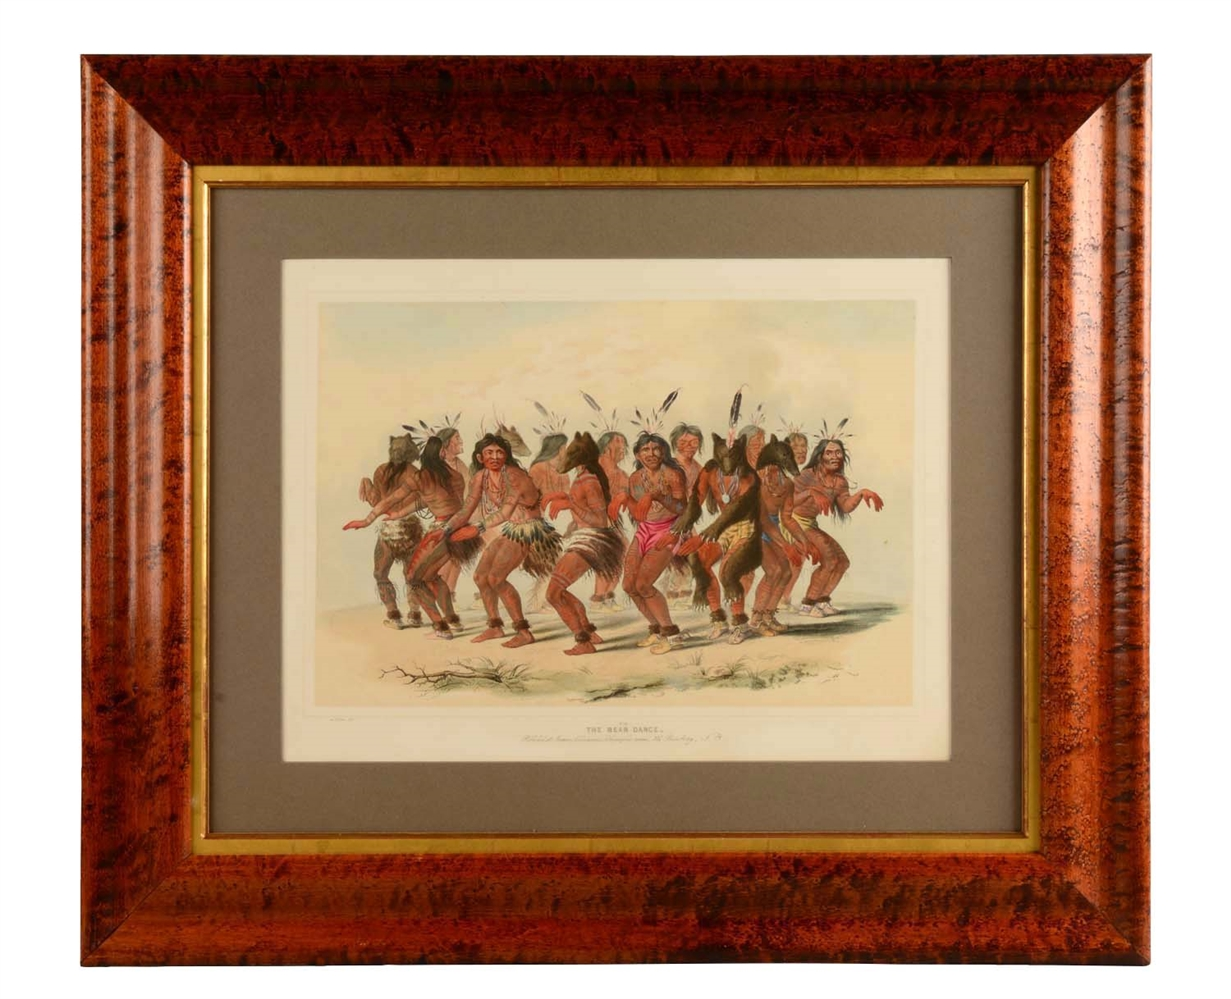 Framed The Bear Dance by Catlin.